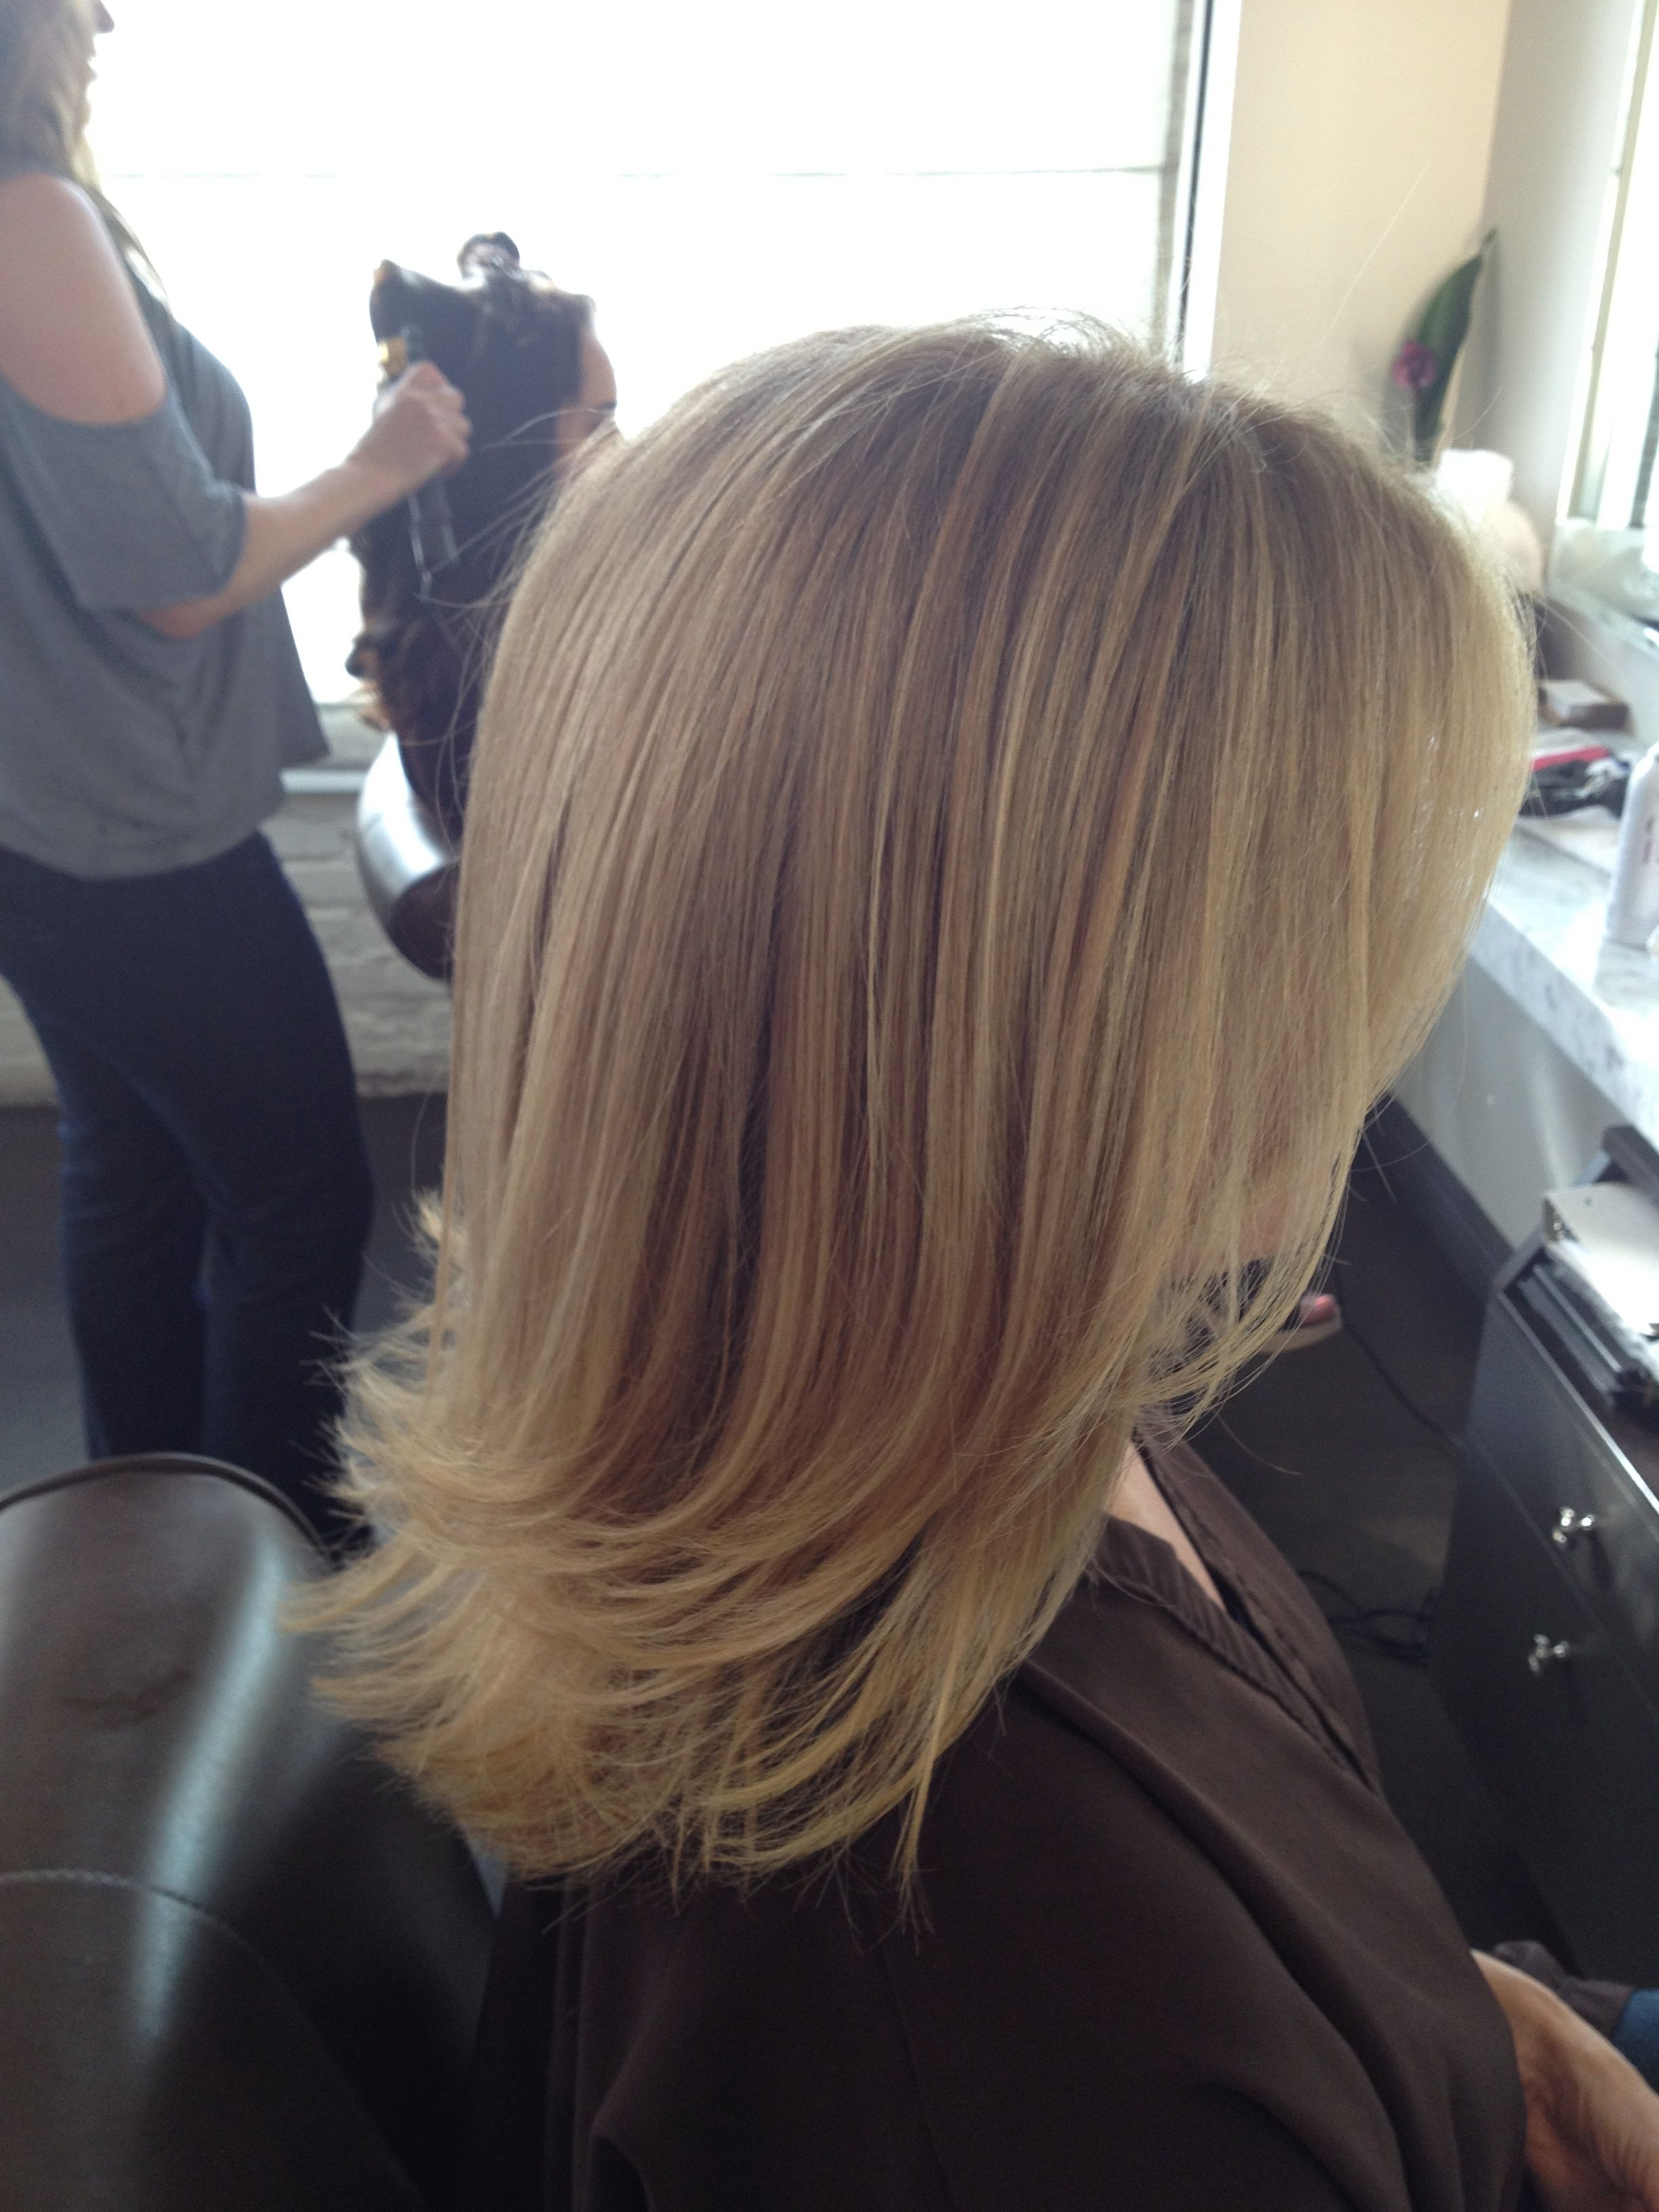 Before and after cool blonde chic cut neil george for Cut and color ideas